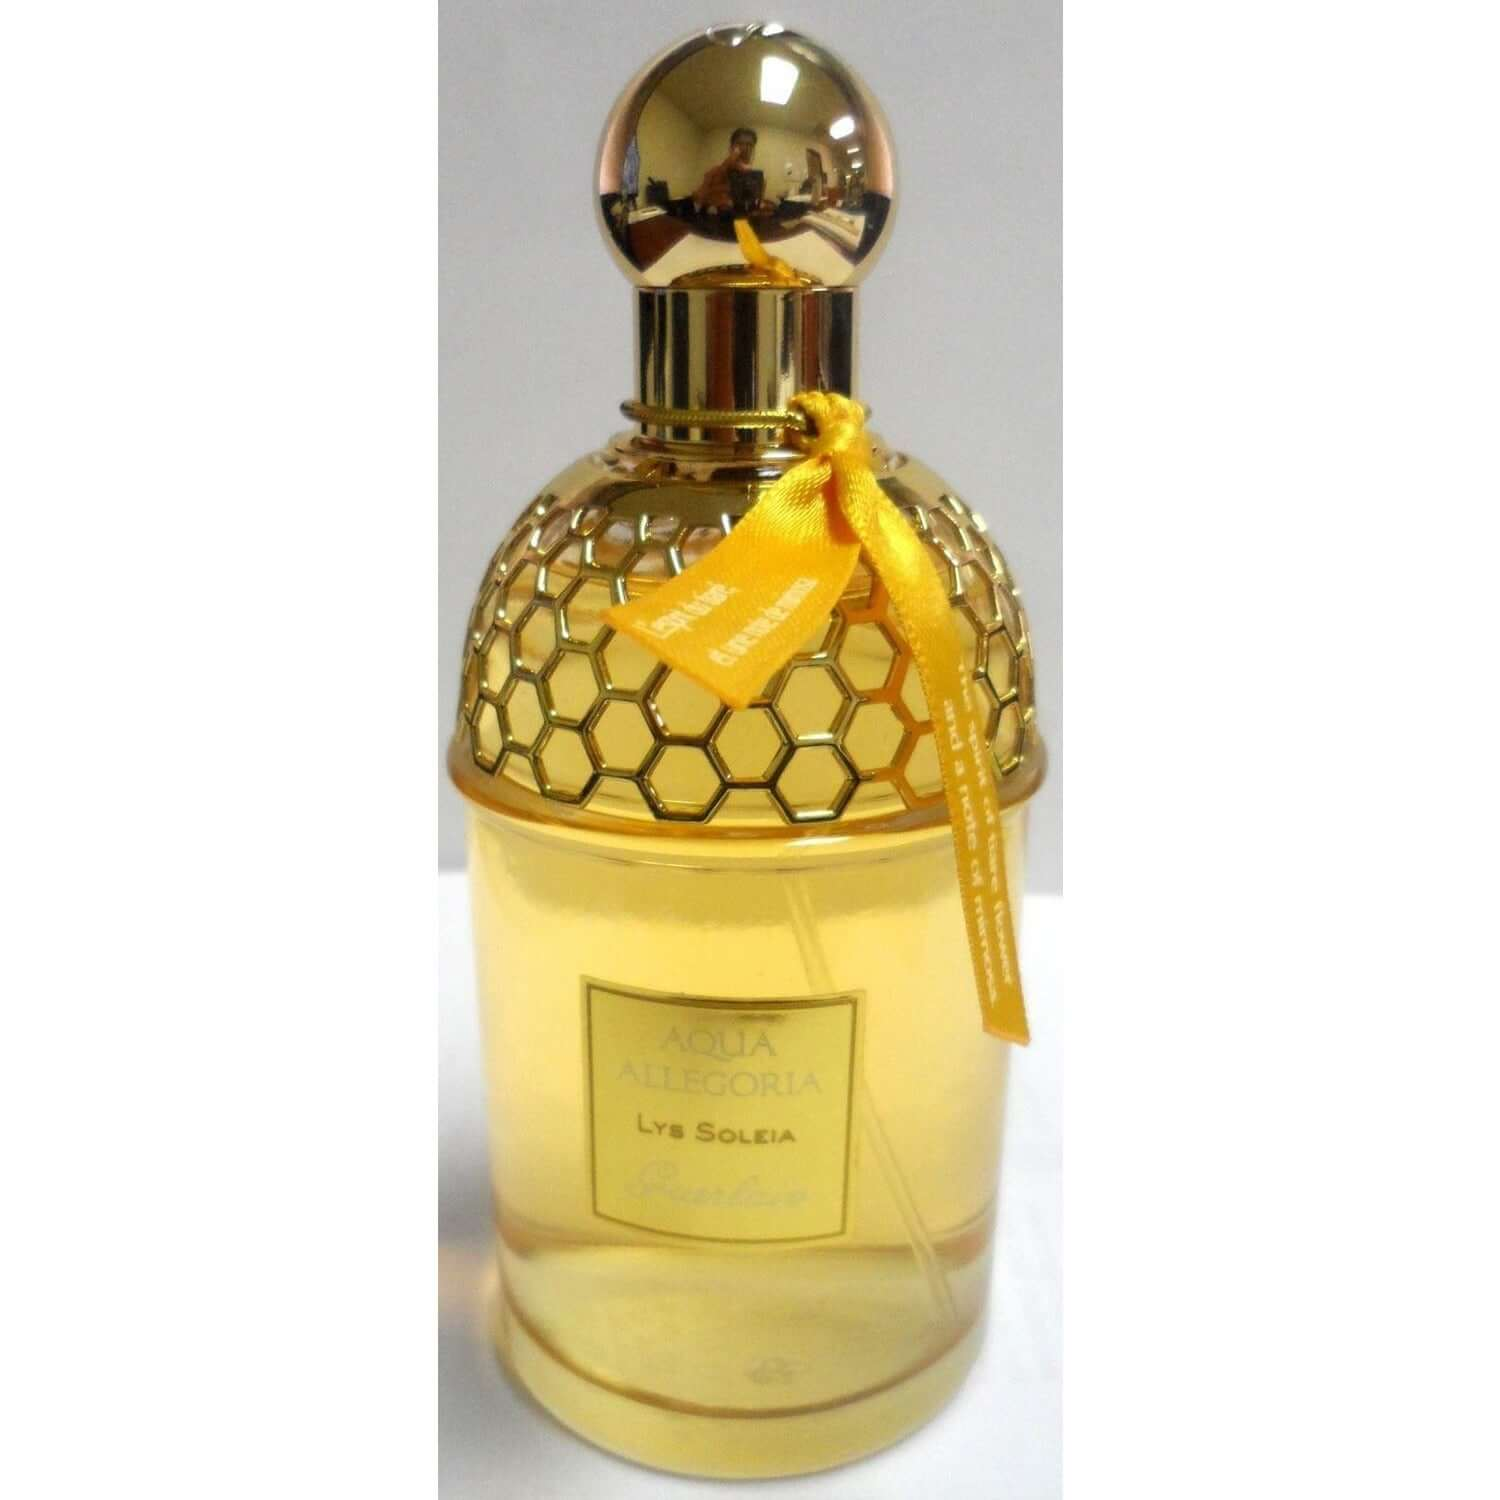 aqua-allegoria-lys-soleia-by-guerlain-women-4-2-oz-edt-new-tester-with-cap